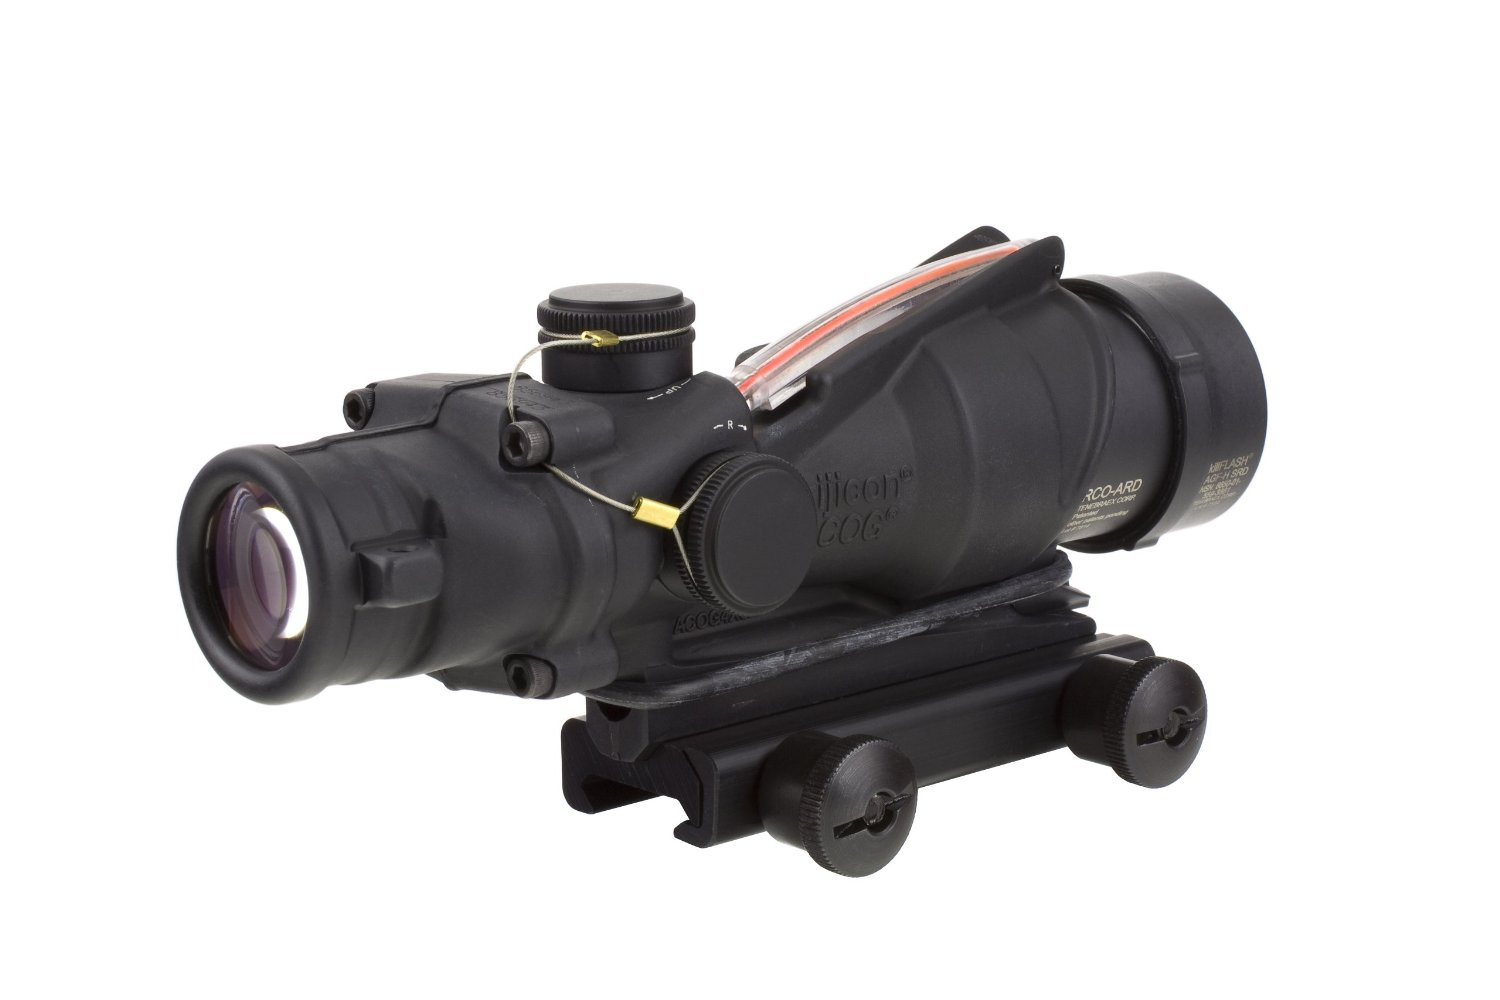 Trijicon Acog 4x32 scope usmc2